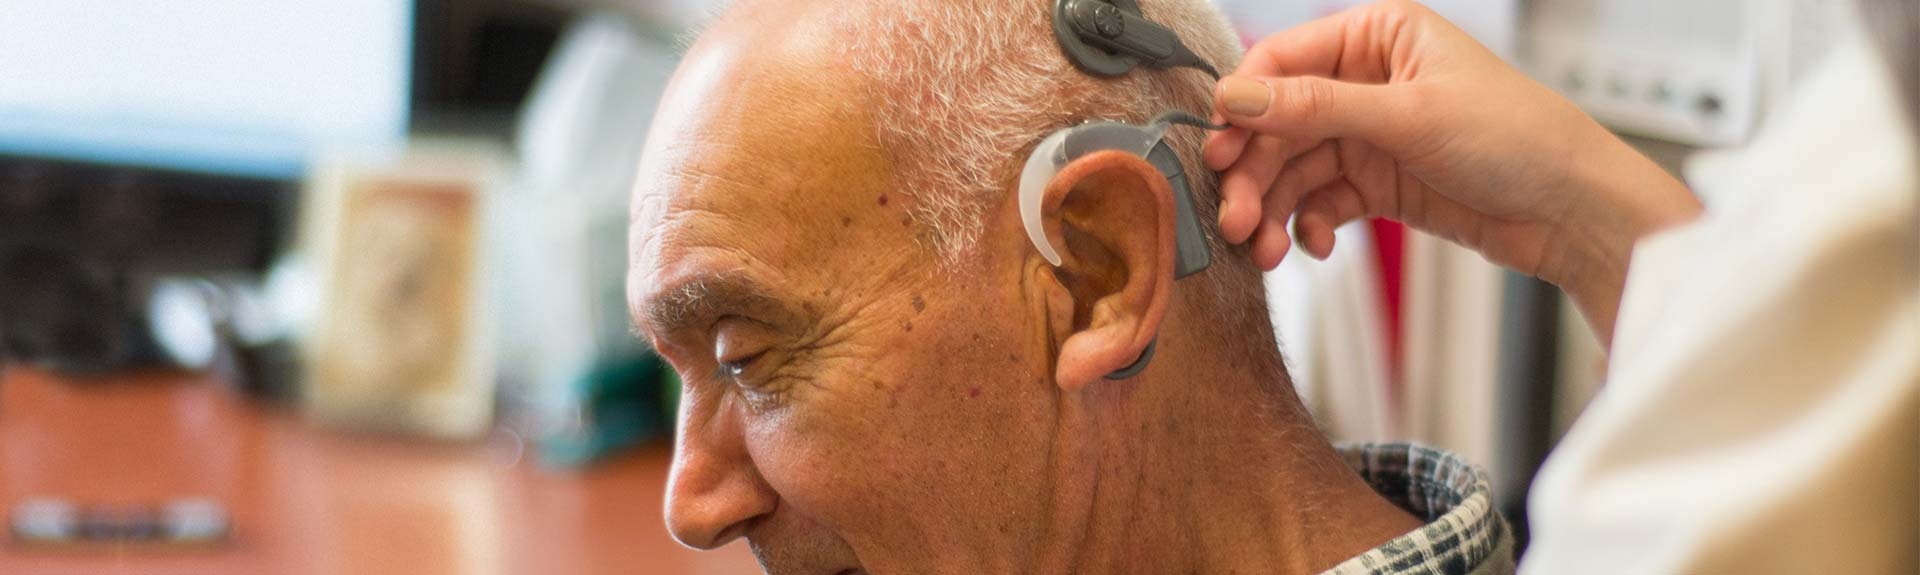 Hearing aid technology on an elderly gentleman at New York Eye and Ear Infirmary of Mount Sinai